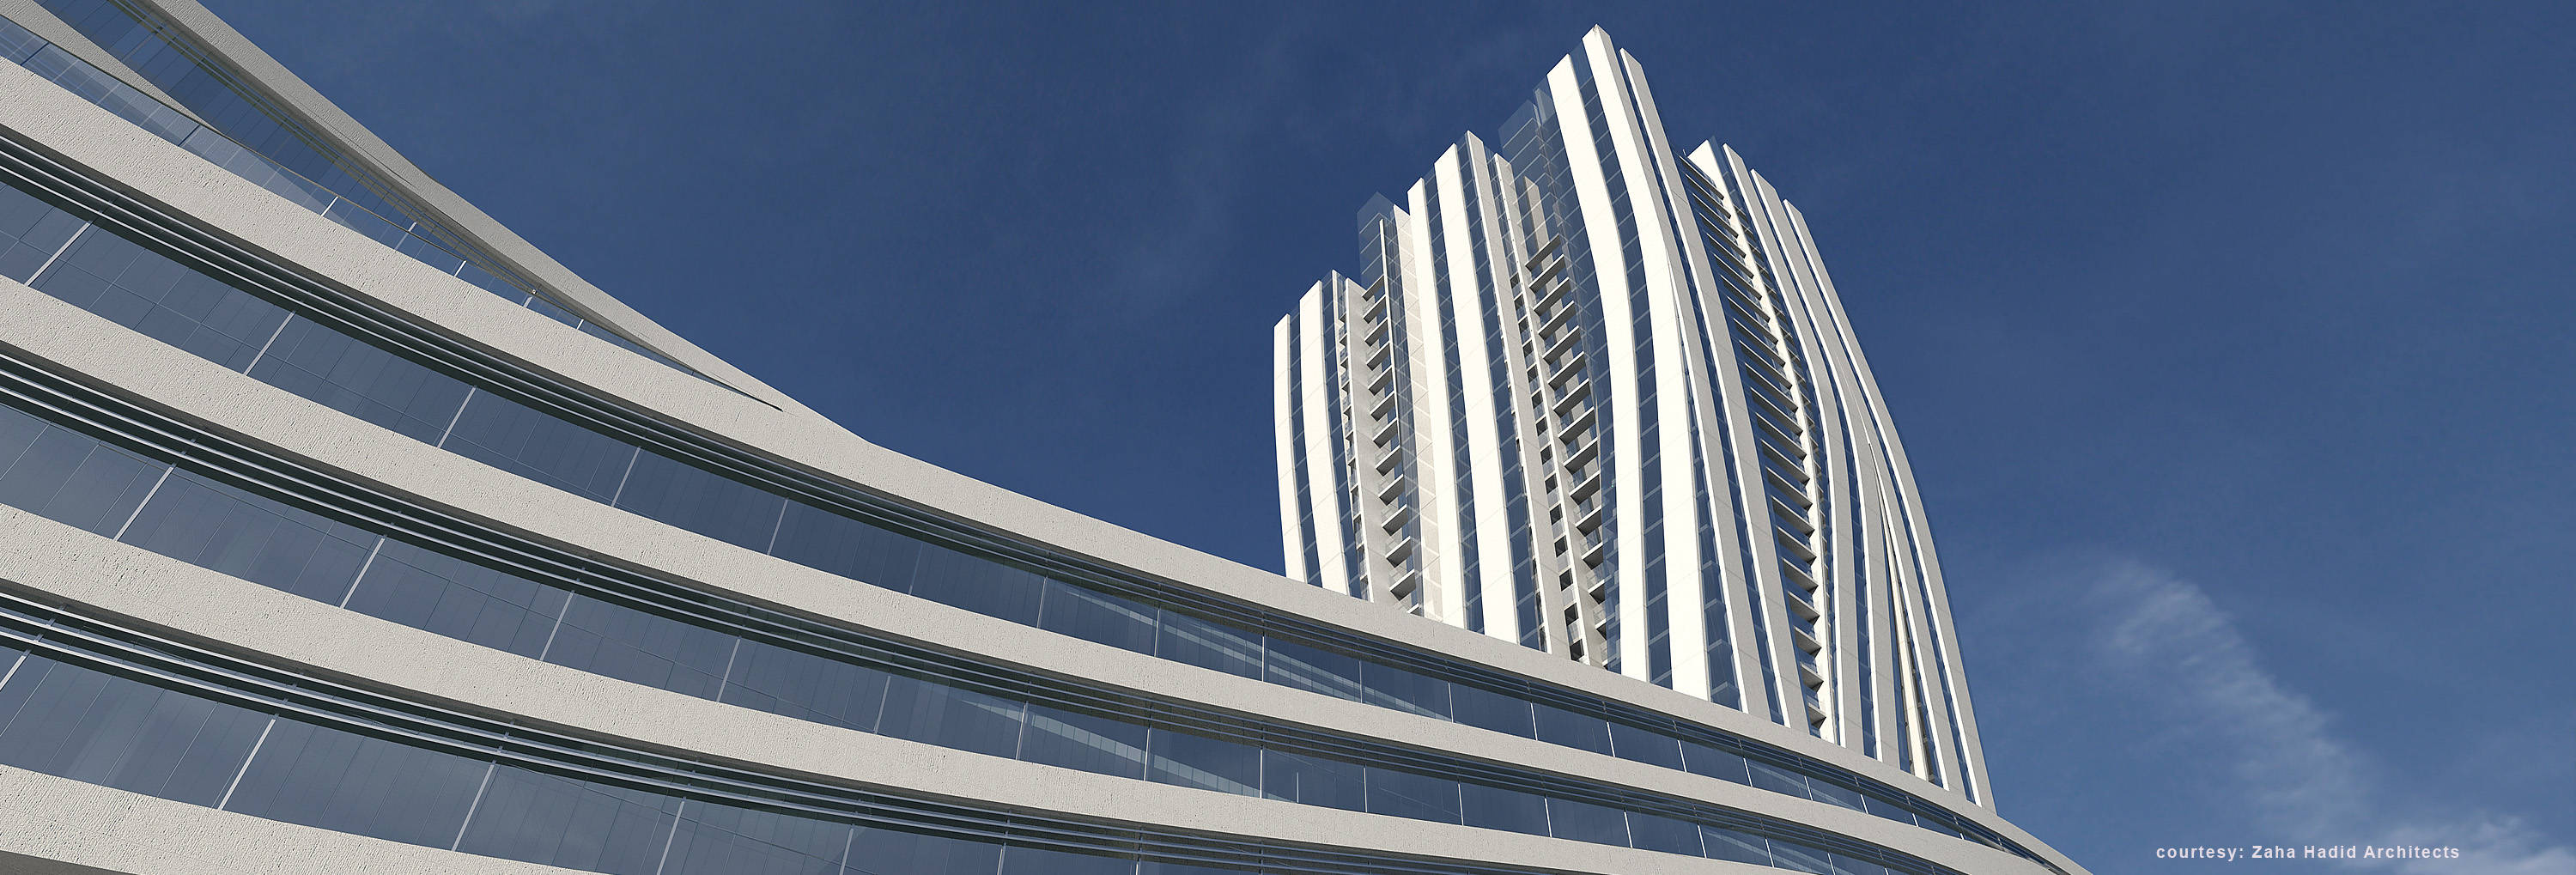 zaha hadid U2 tower